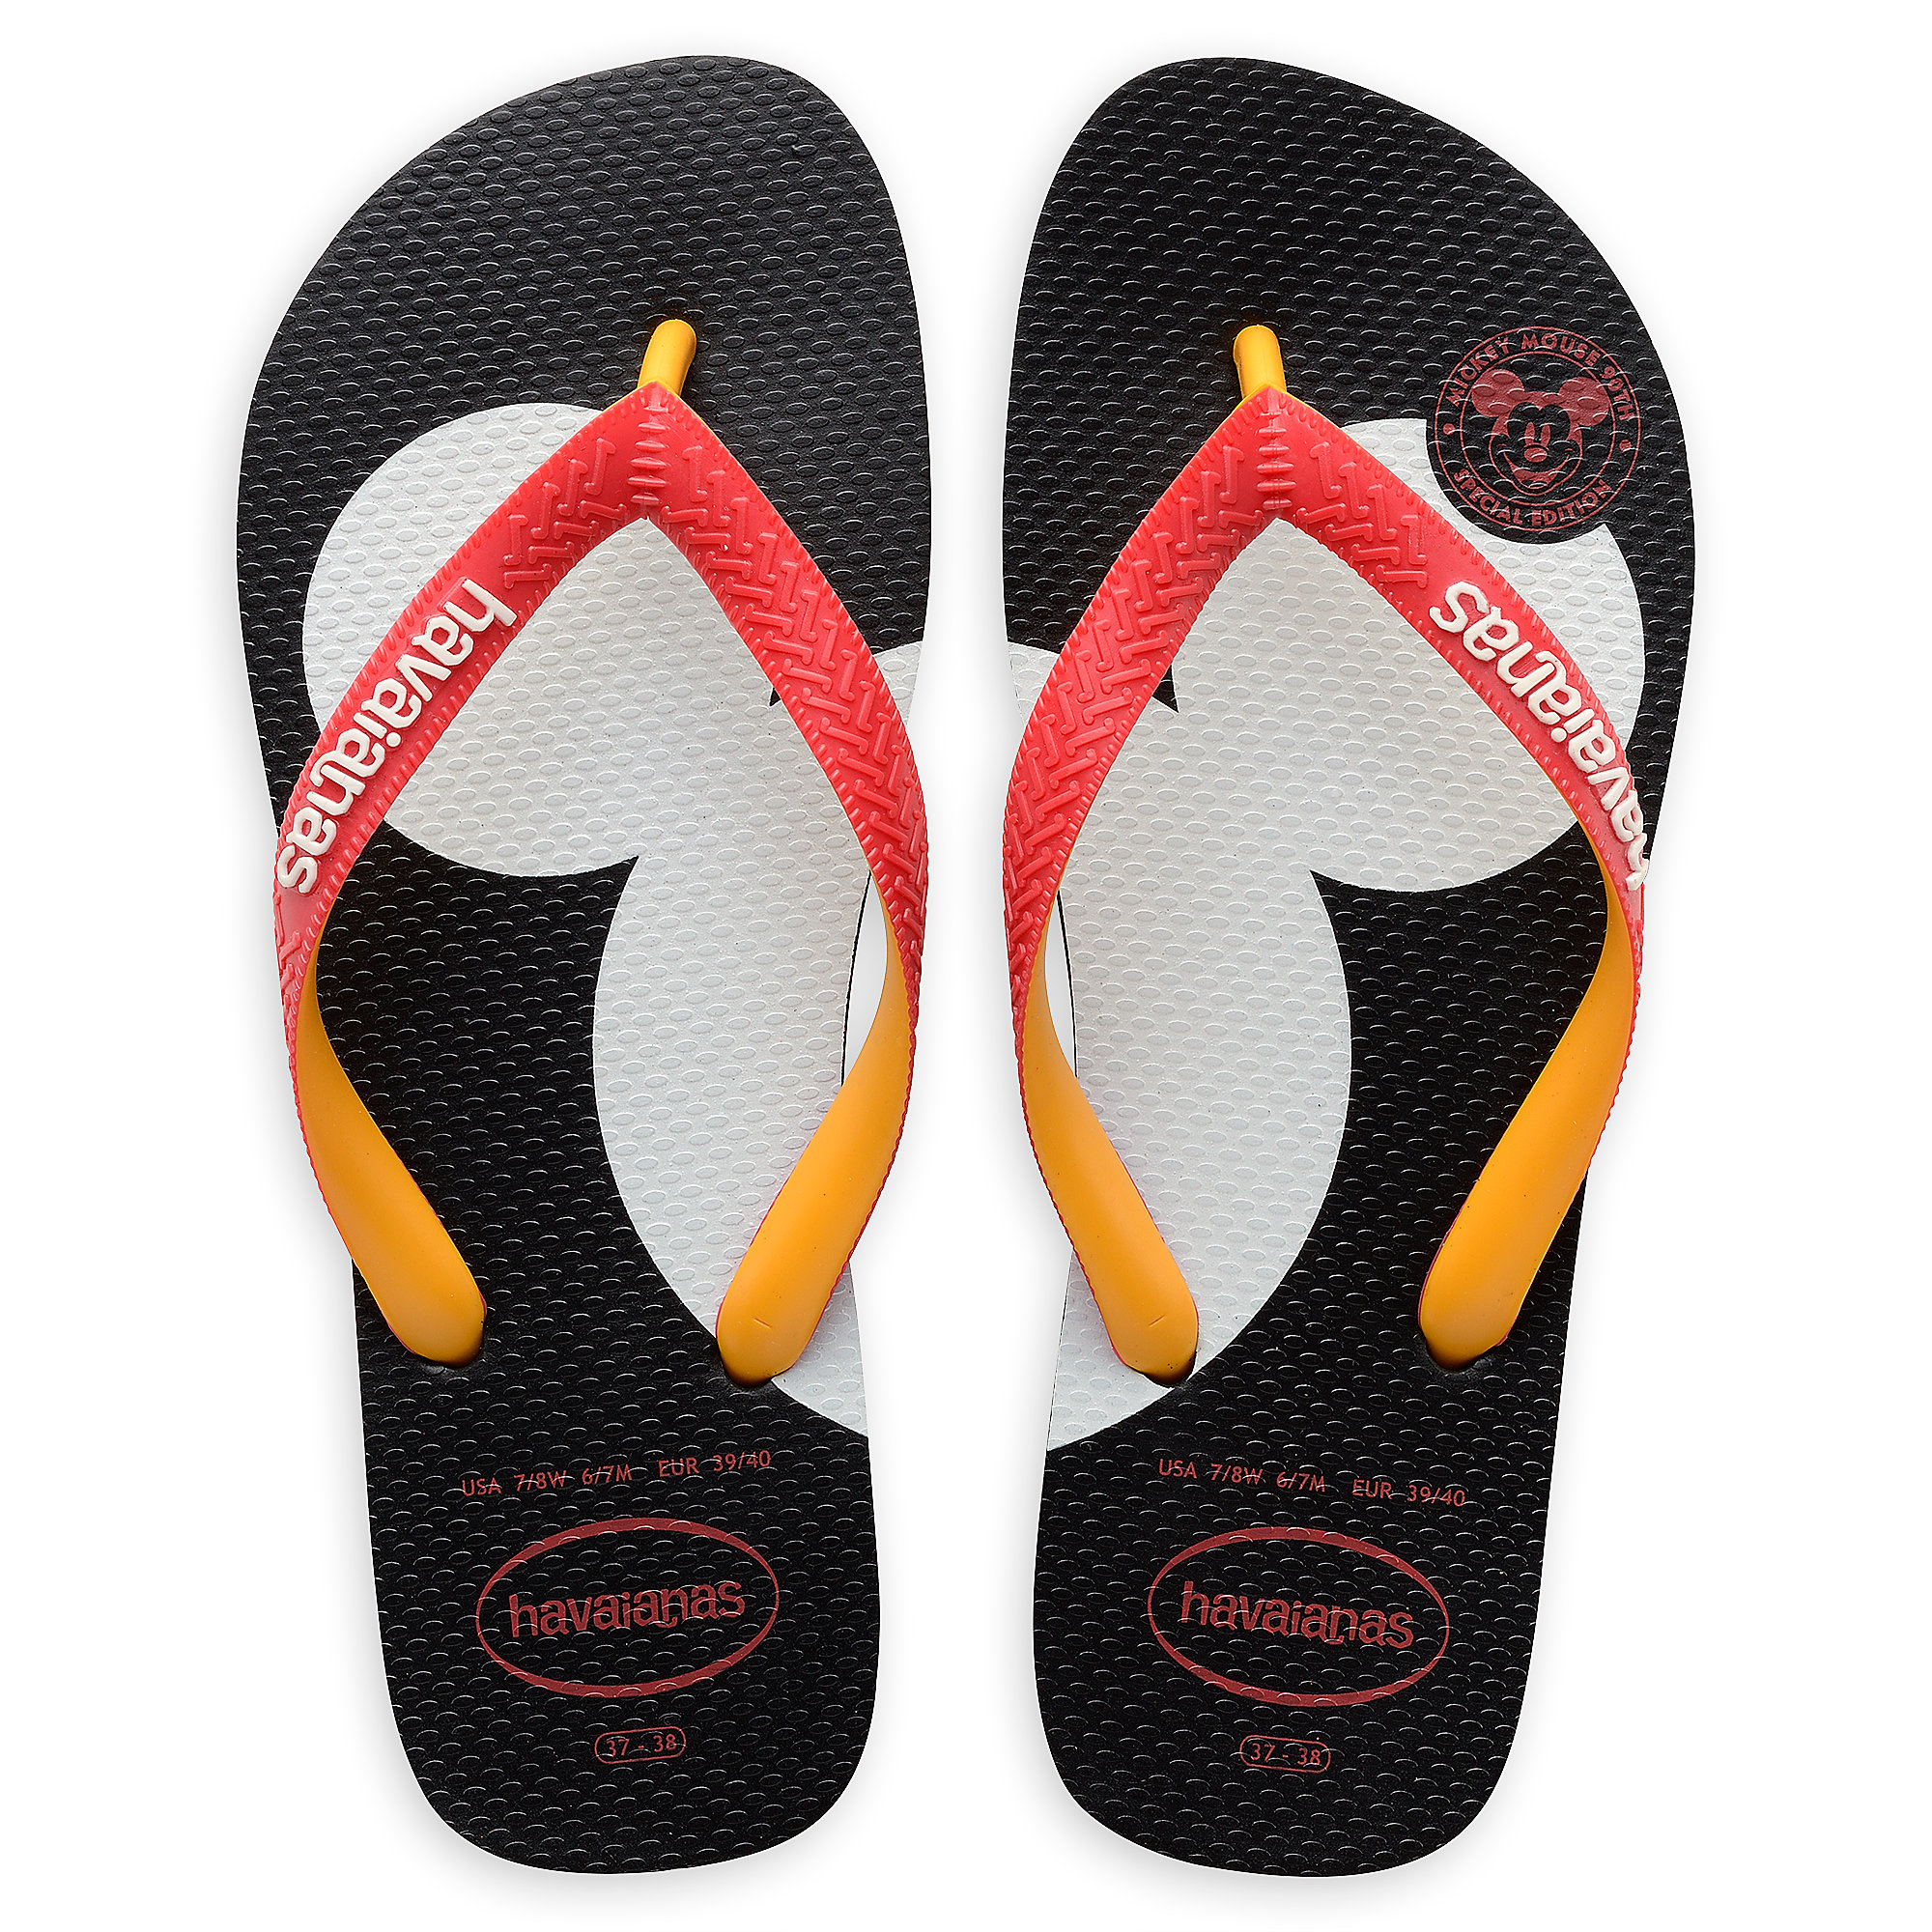 Product Image of Mickey Mouse Silhouette Flip Flops for Adults by Havaianas  # 1